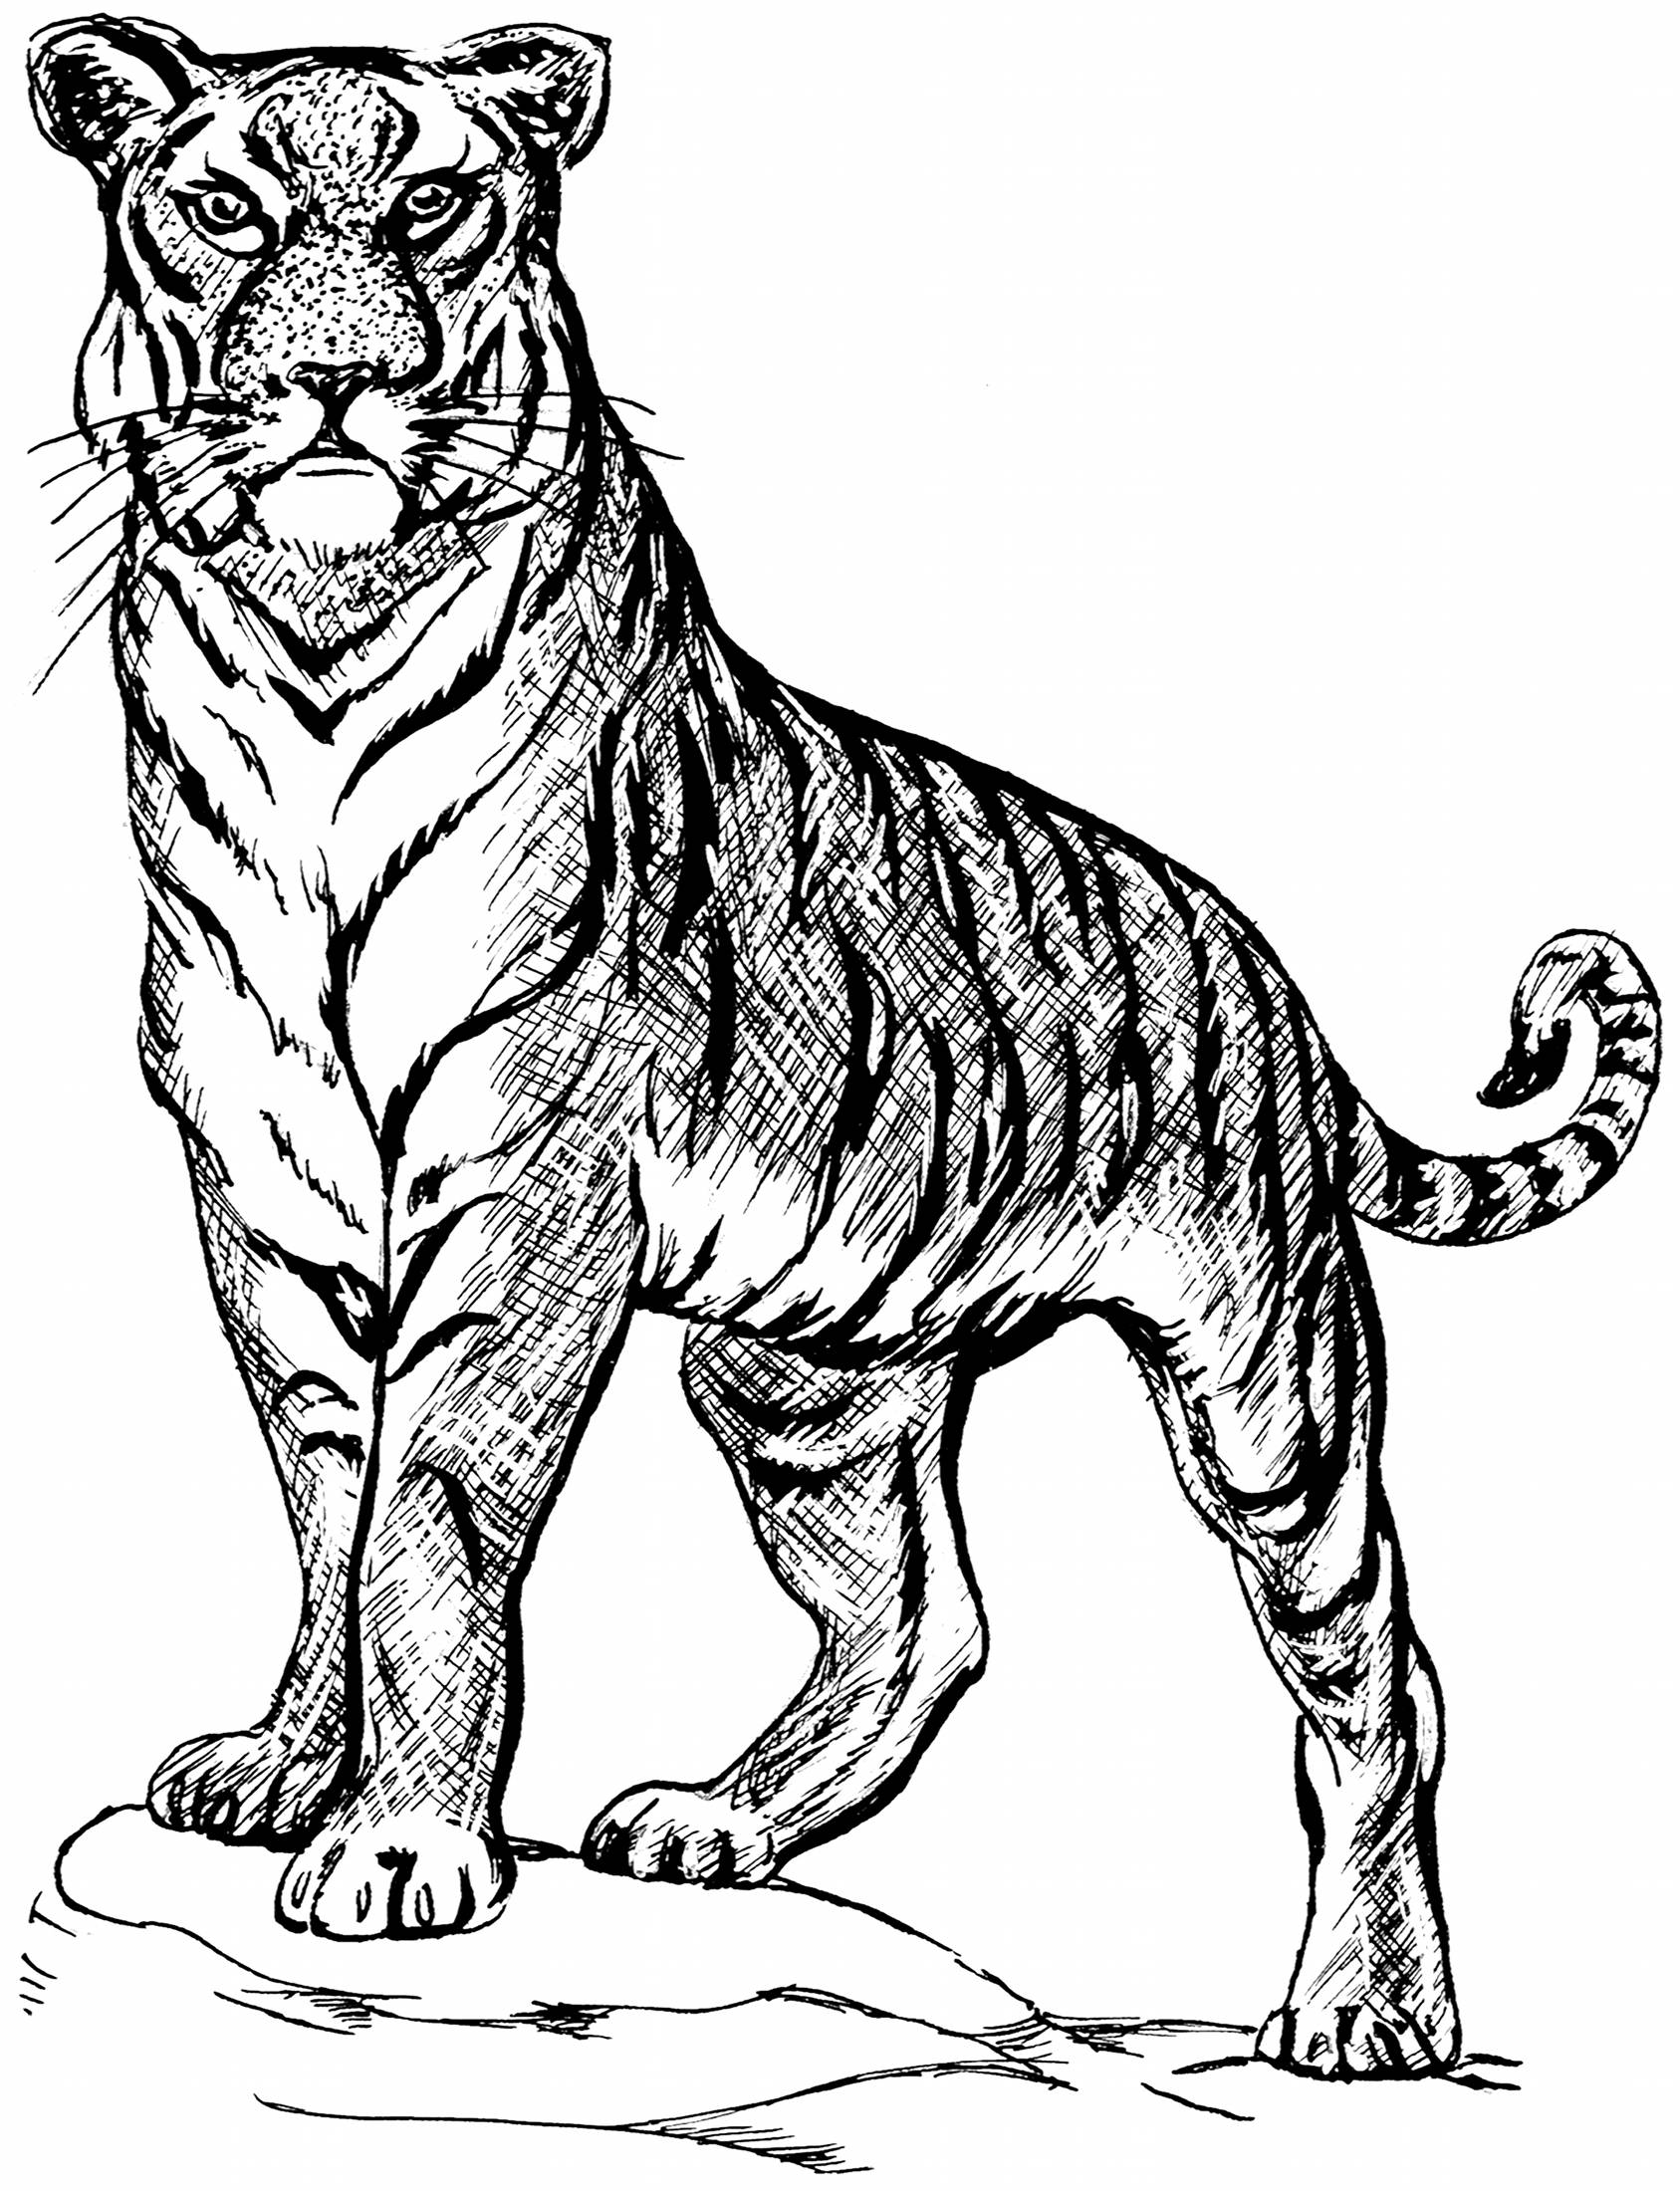 1687x2200 Tiger Line Drawings For Coloring